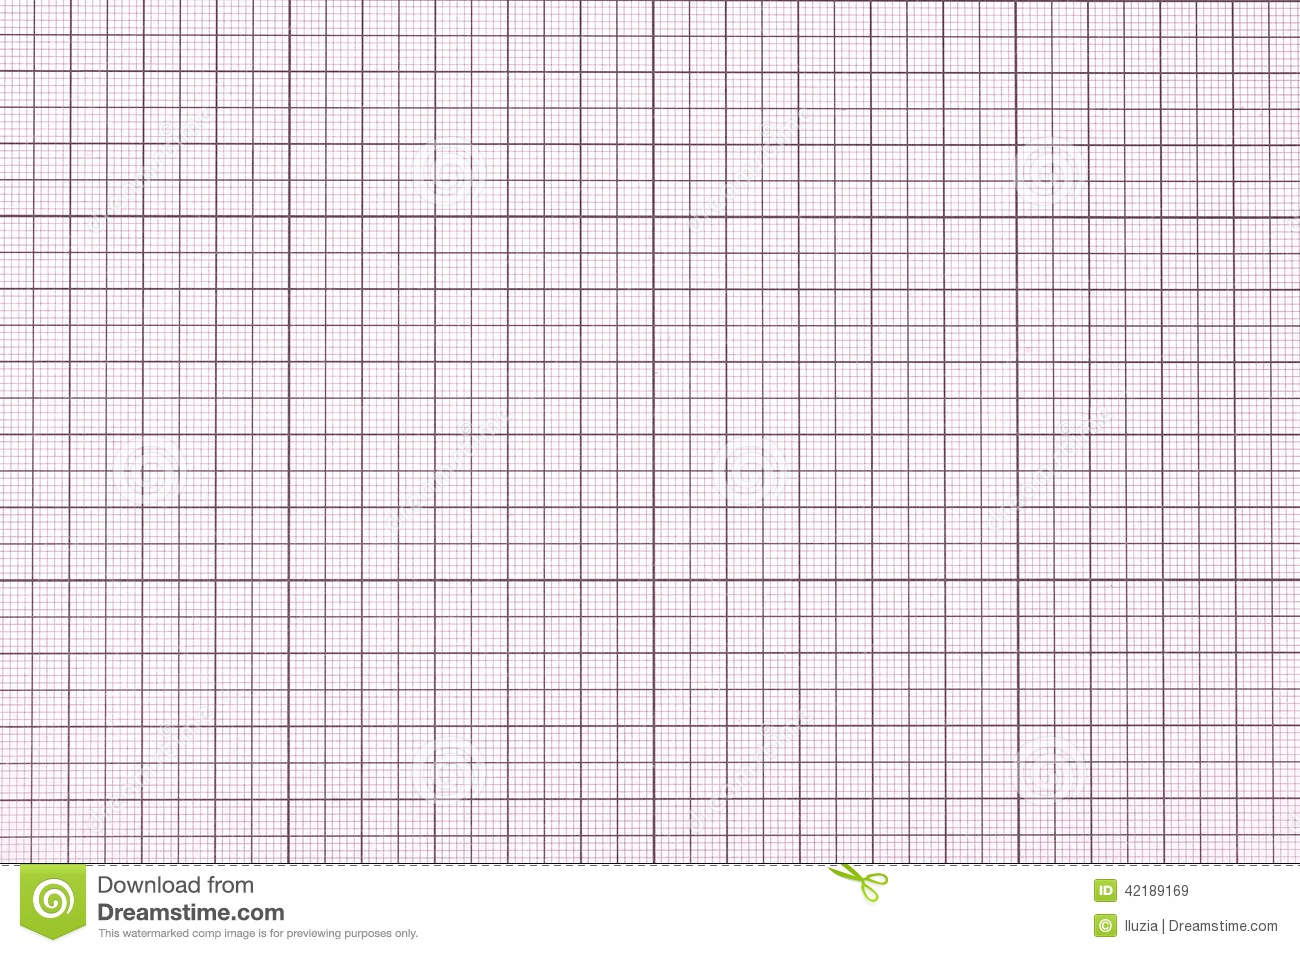 Blank Ecg Paper Violet graph paper stock photo - image: 42189169